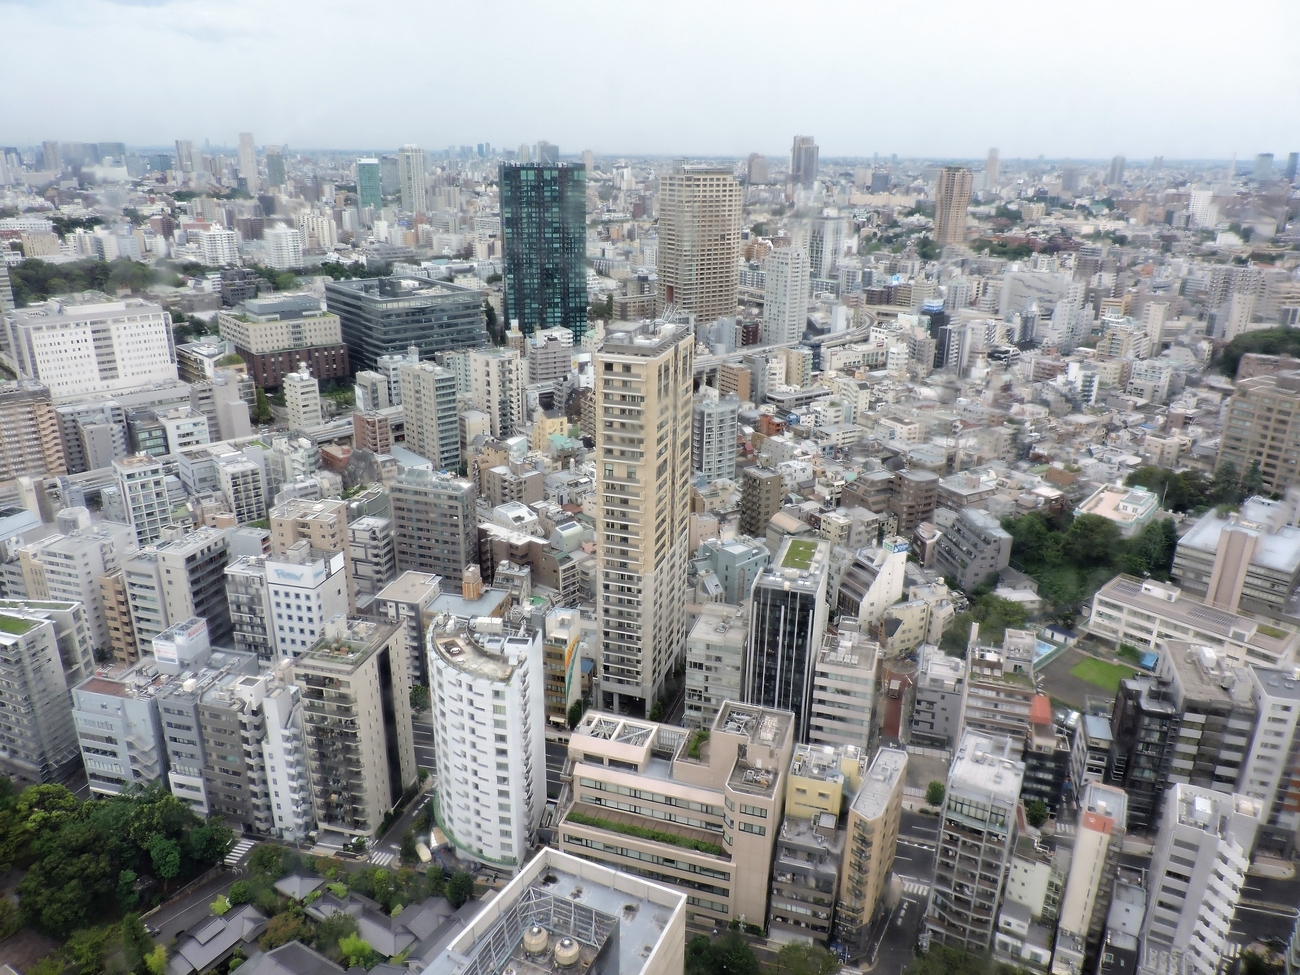 view of Tokyo from the top